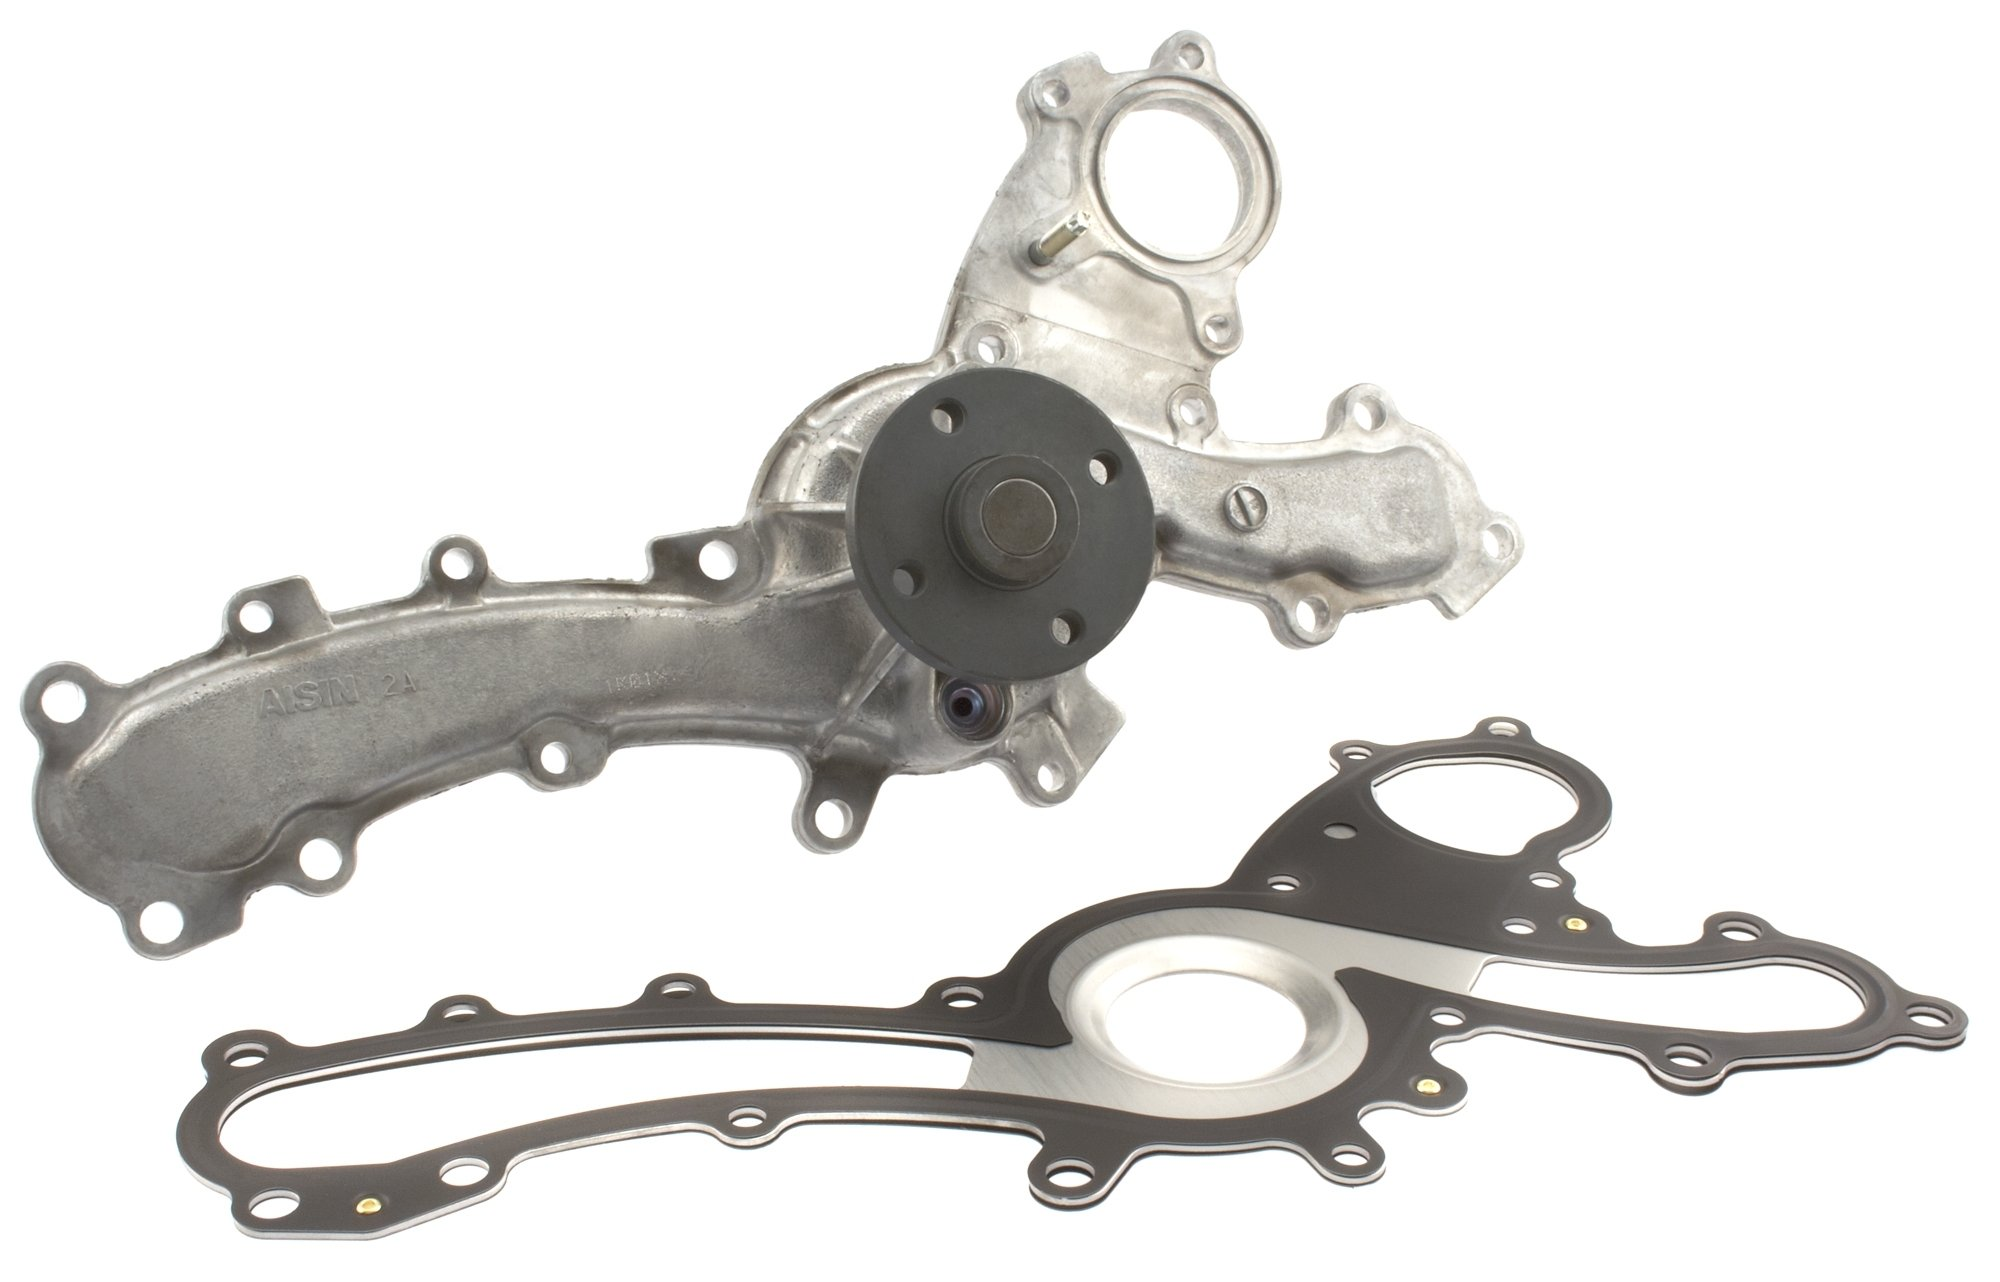 Aisin WPT-803 Engine Water Pump by Aisin